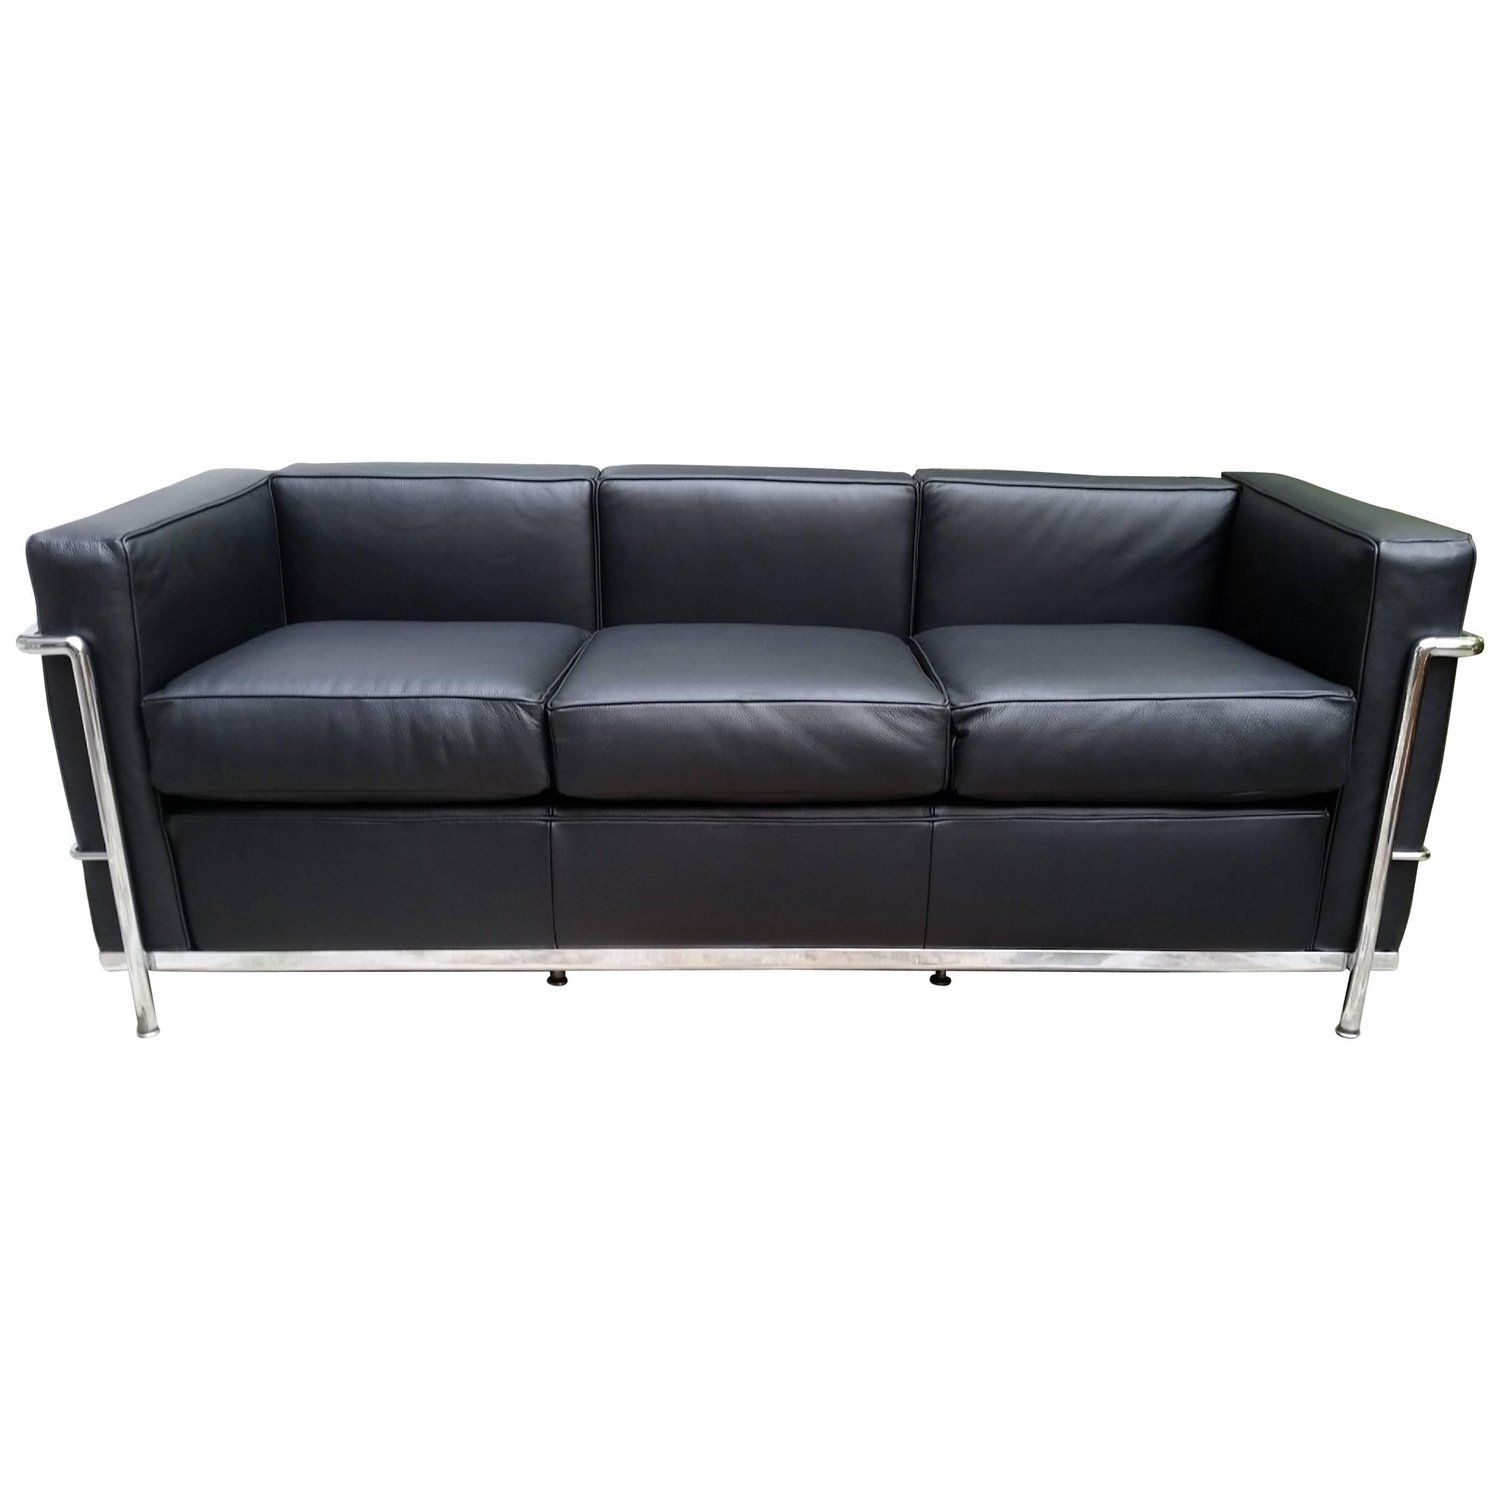 Enjoyable Lc2 Le Corbusier Three Seat Sofa In Black Leather Grained Machost Co Dining Chair Design Ideas Machostcouk